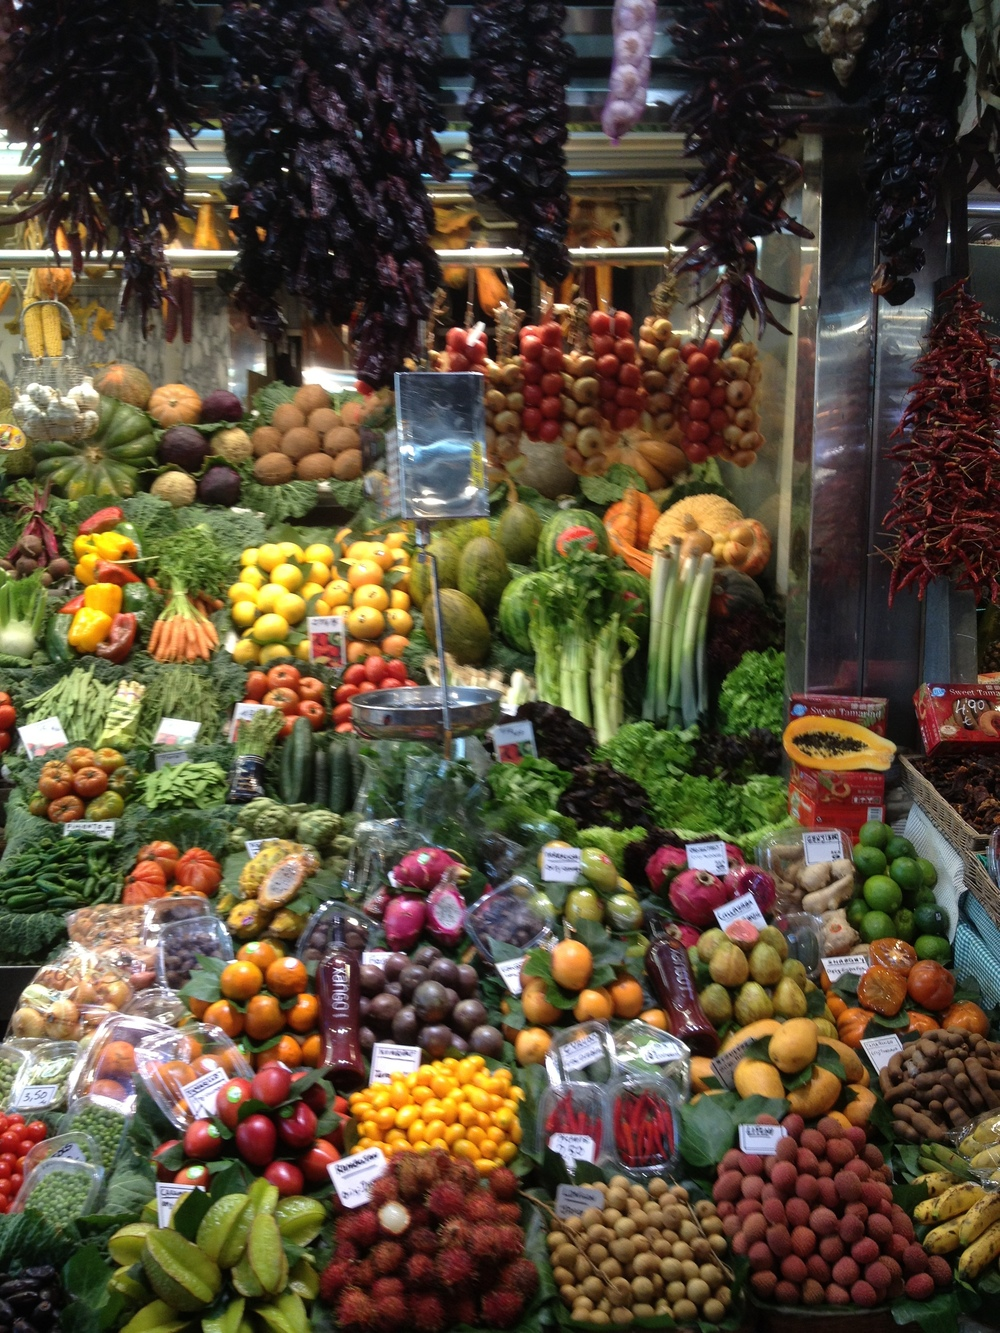 The famous Boqueria Market in Barcelona -  a food lover's dream come true!